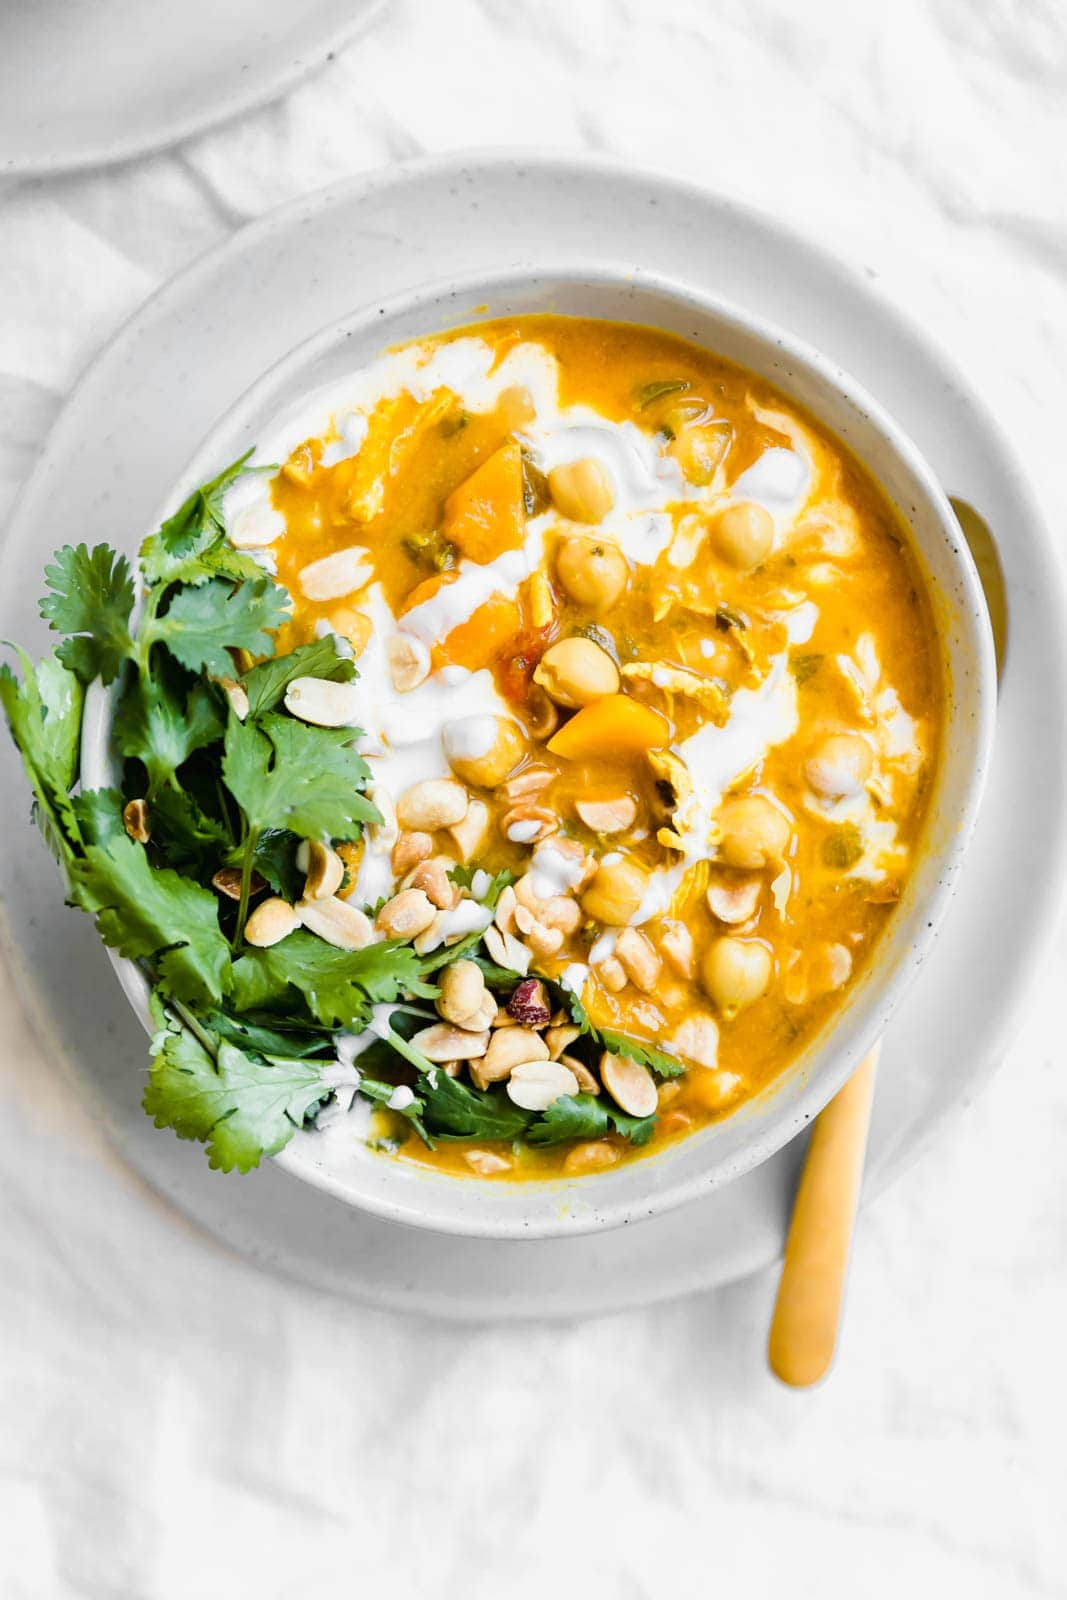 Cooked on low heat for 2 hours, this thai-spiced coconut chicken chickpea sweet potato soup is the best soup I've ever had, hence the name: Dope Soup.